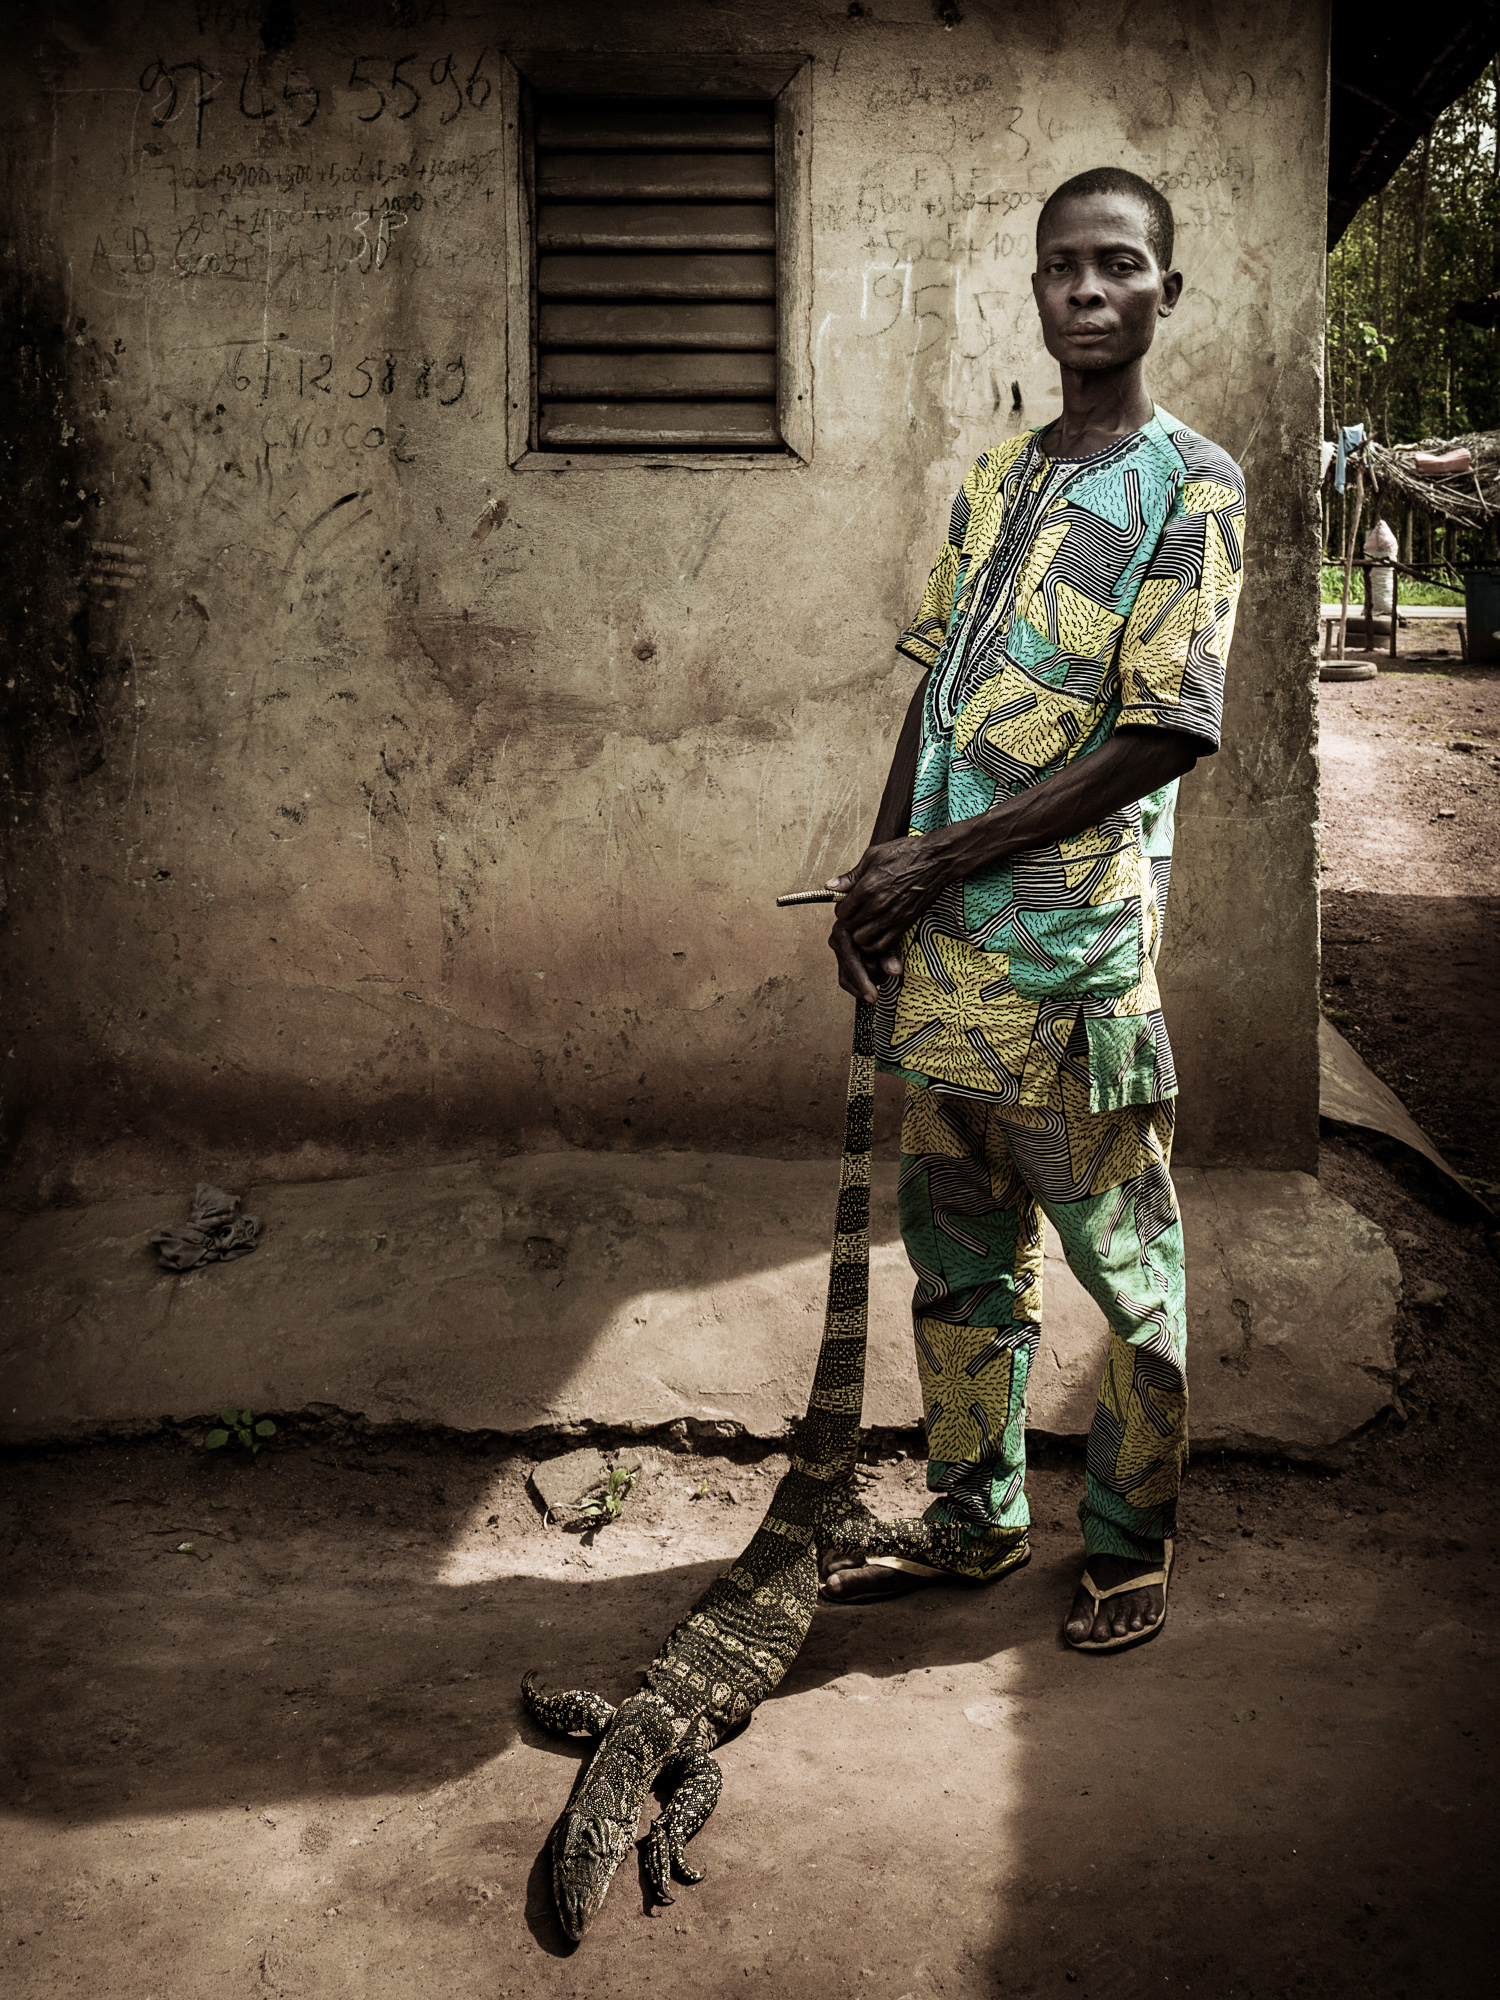 Benin_2000_Man with lezard.jpg